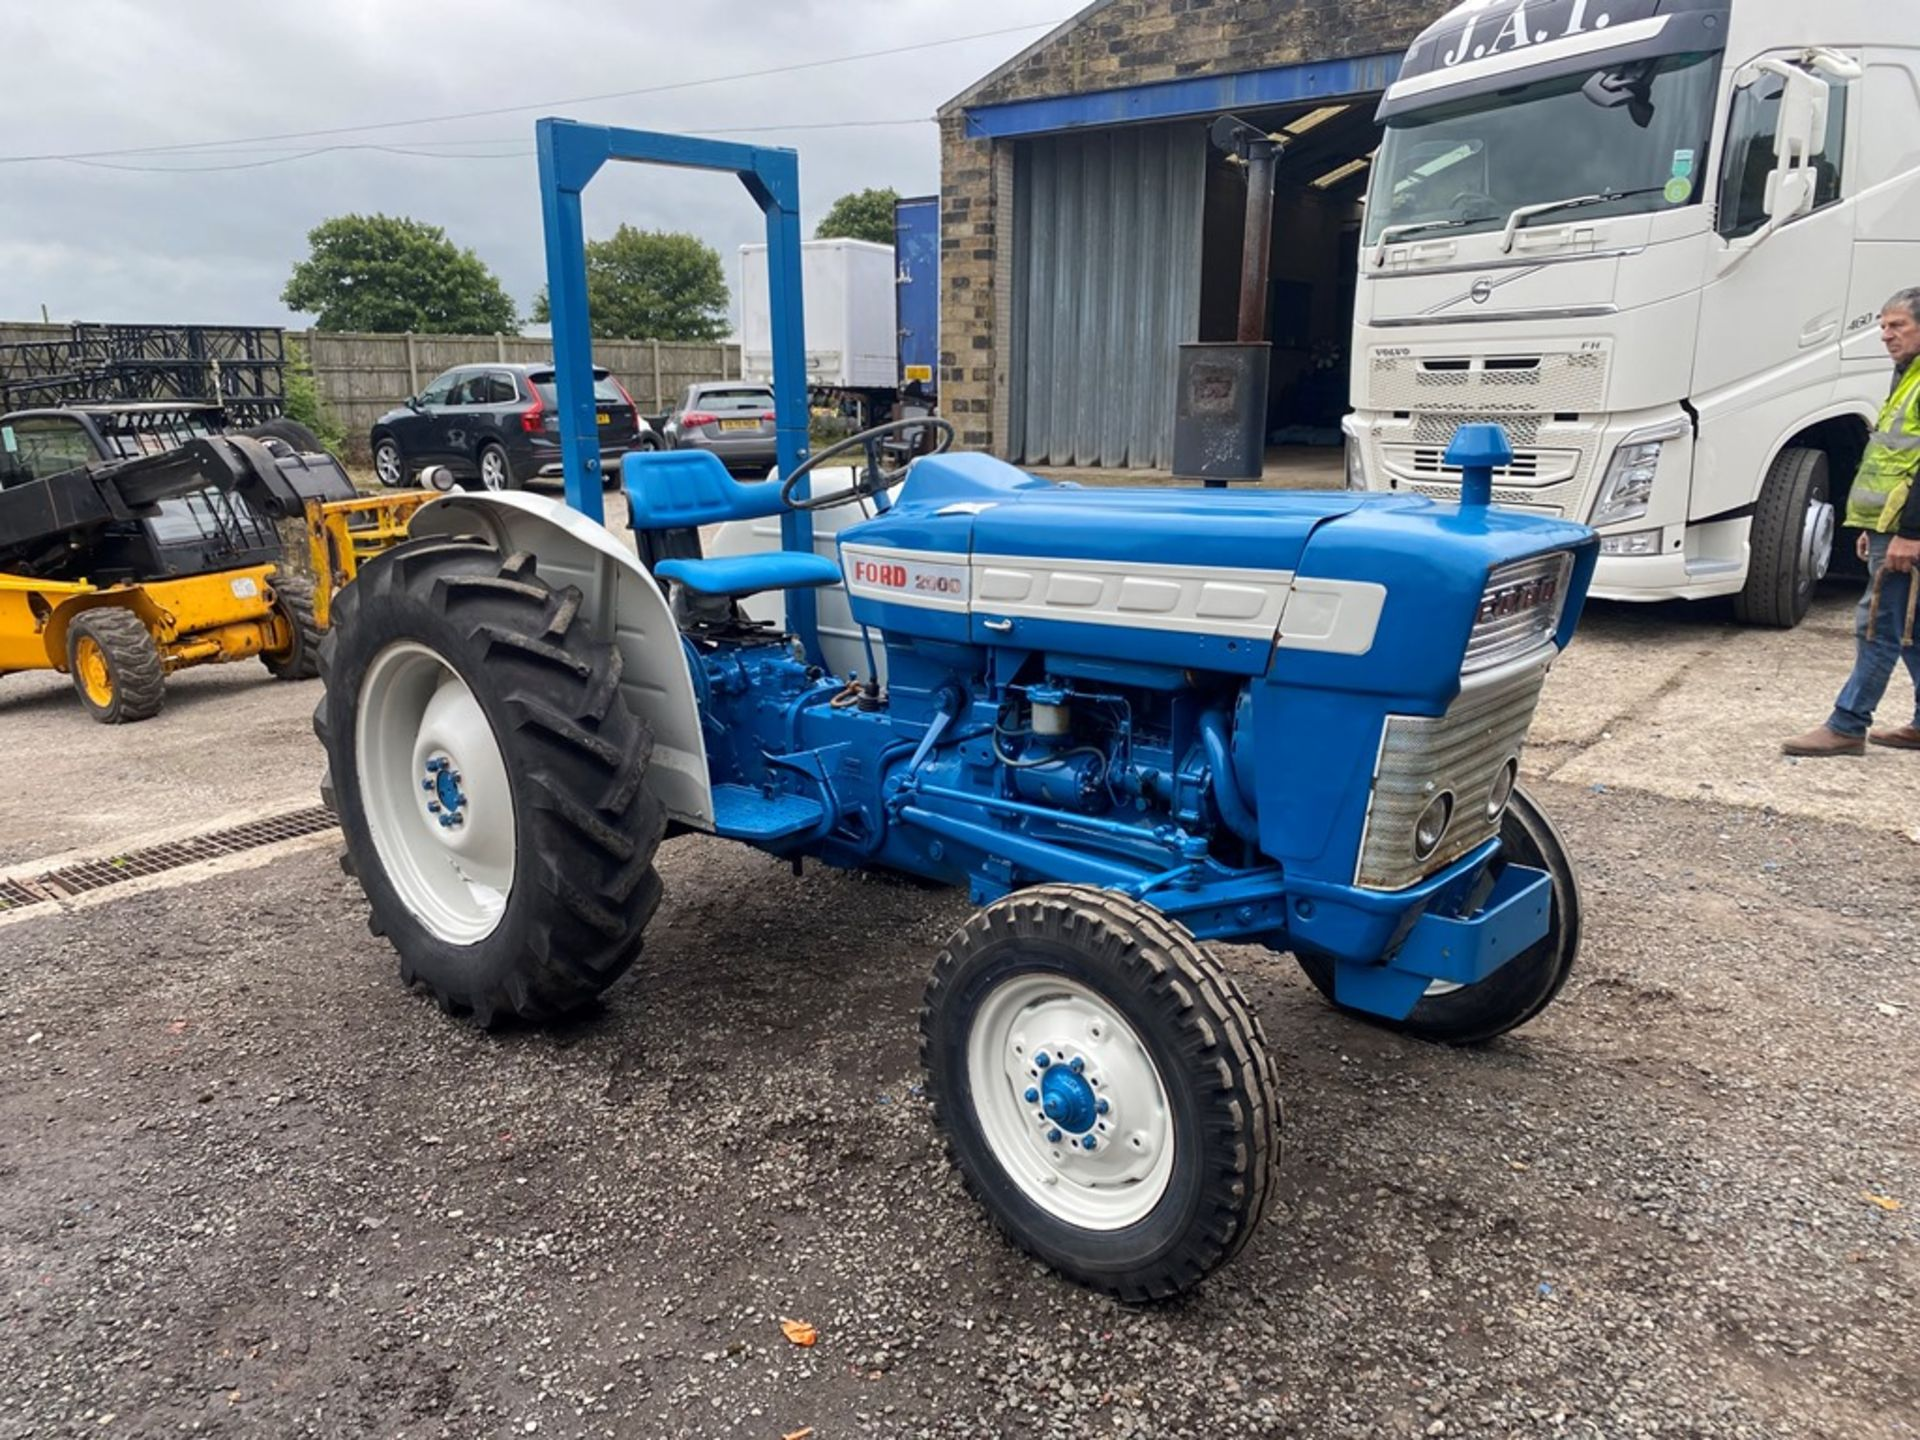 Ford 2000 Agricultural Tractor, vendors comments – nice original condition, clutch is stuck on - Image 2 of 9